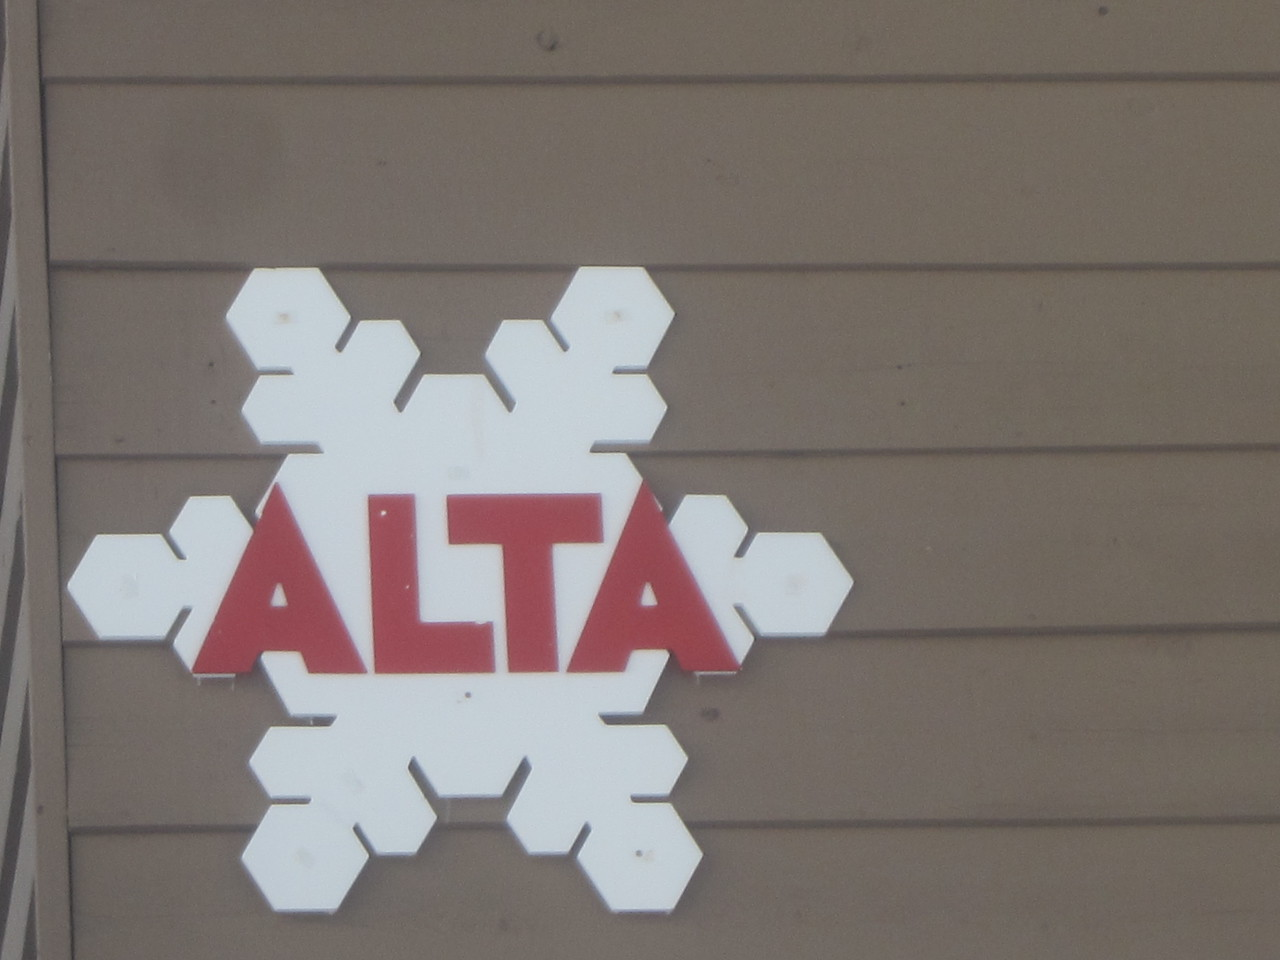 Alta, the place and the state of mind.  Another amazing, funny, yummy, cozy visit. Can't wait for the next one.